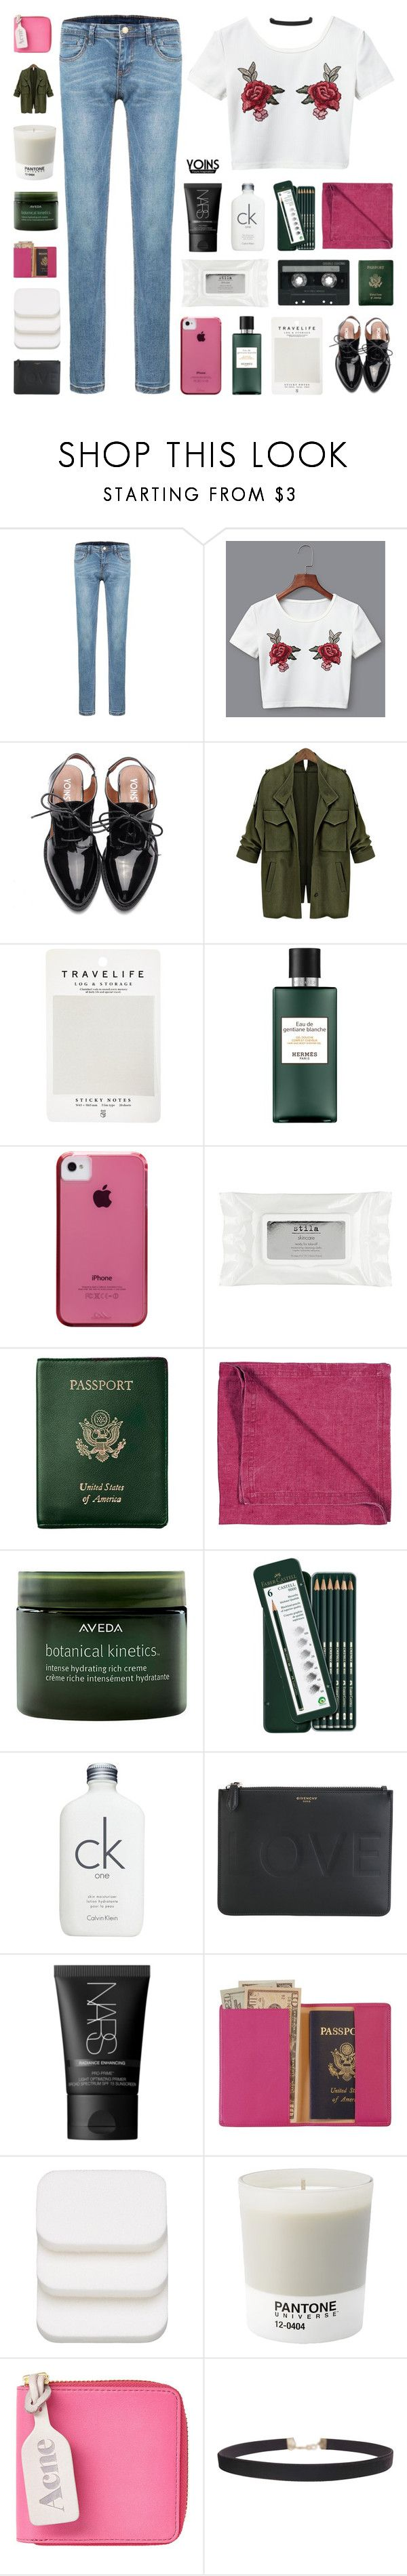 """I'd Rather Have Roses On My Table Than Diamonds Around My Neck - Yoins 4"" by paradiselemonade ❤ liked on Polyvore featuring Mark's Tokyo Edge, Hermès, Case-Mate, CASSETTE, Stila, Royce Leather, LINUM, Aveda, Faber-Castell and Calvin Klein"